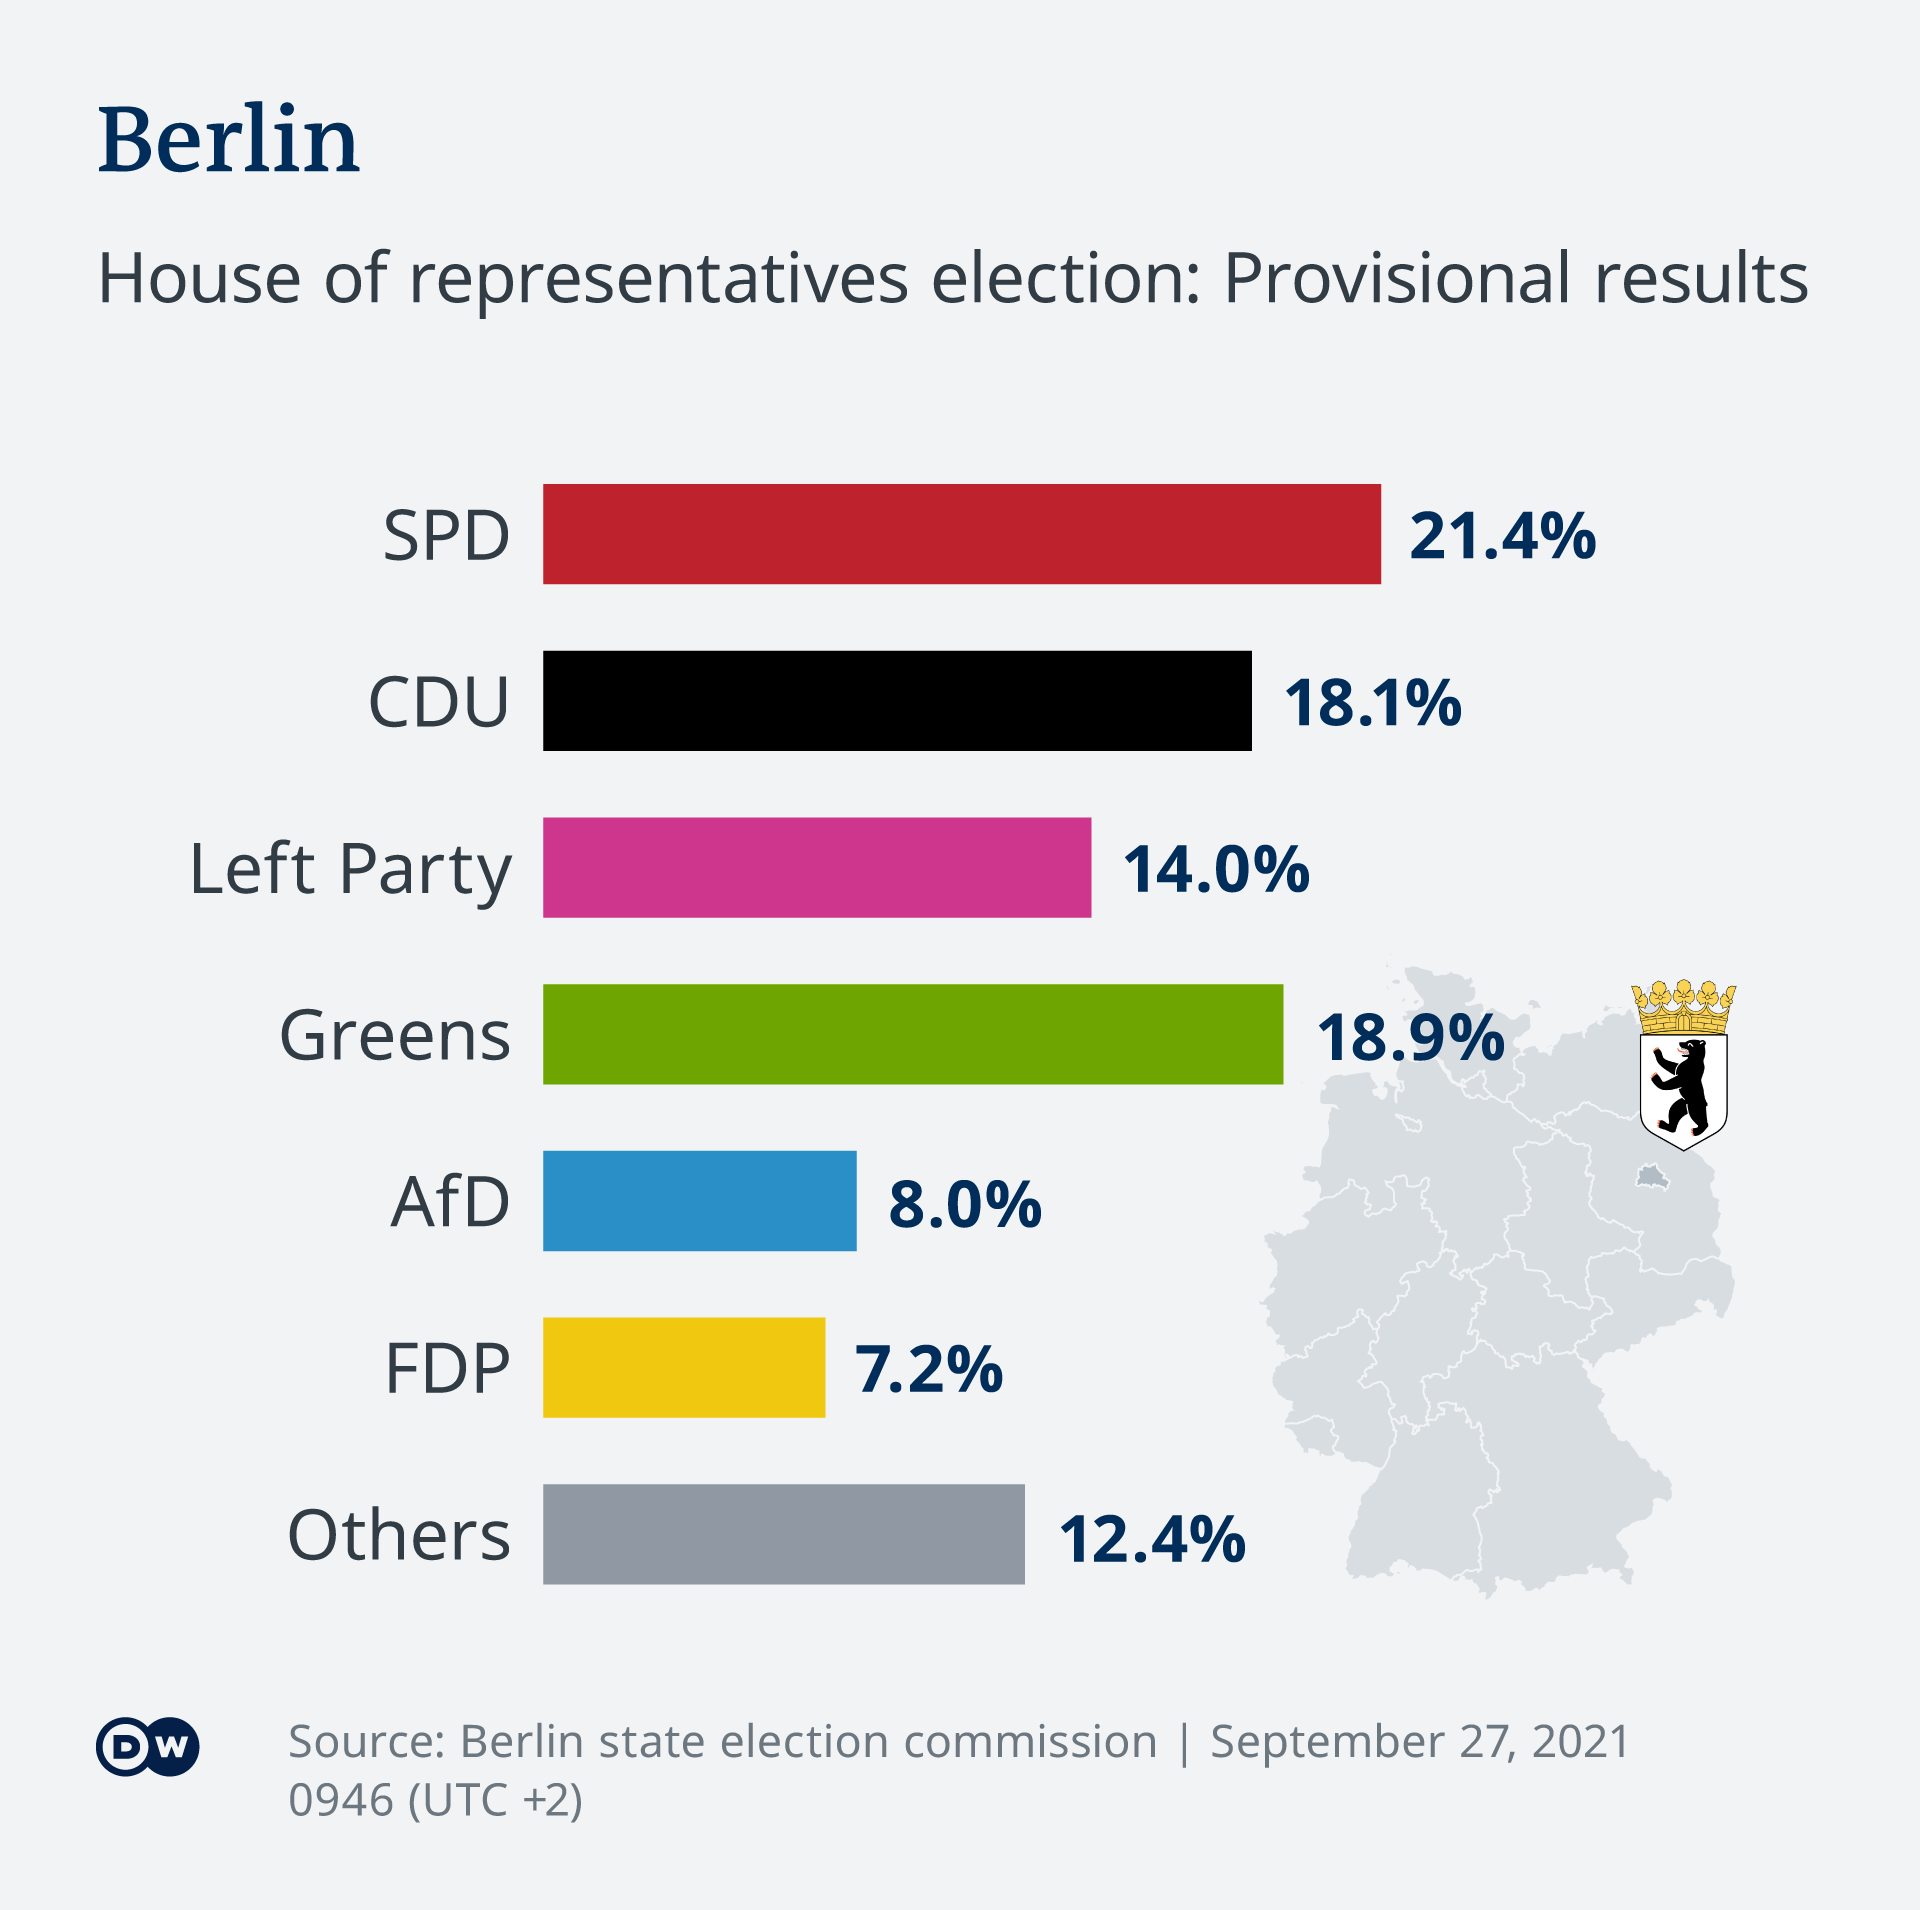 Infographic showing the provisional results from Berlin's state parliament election